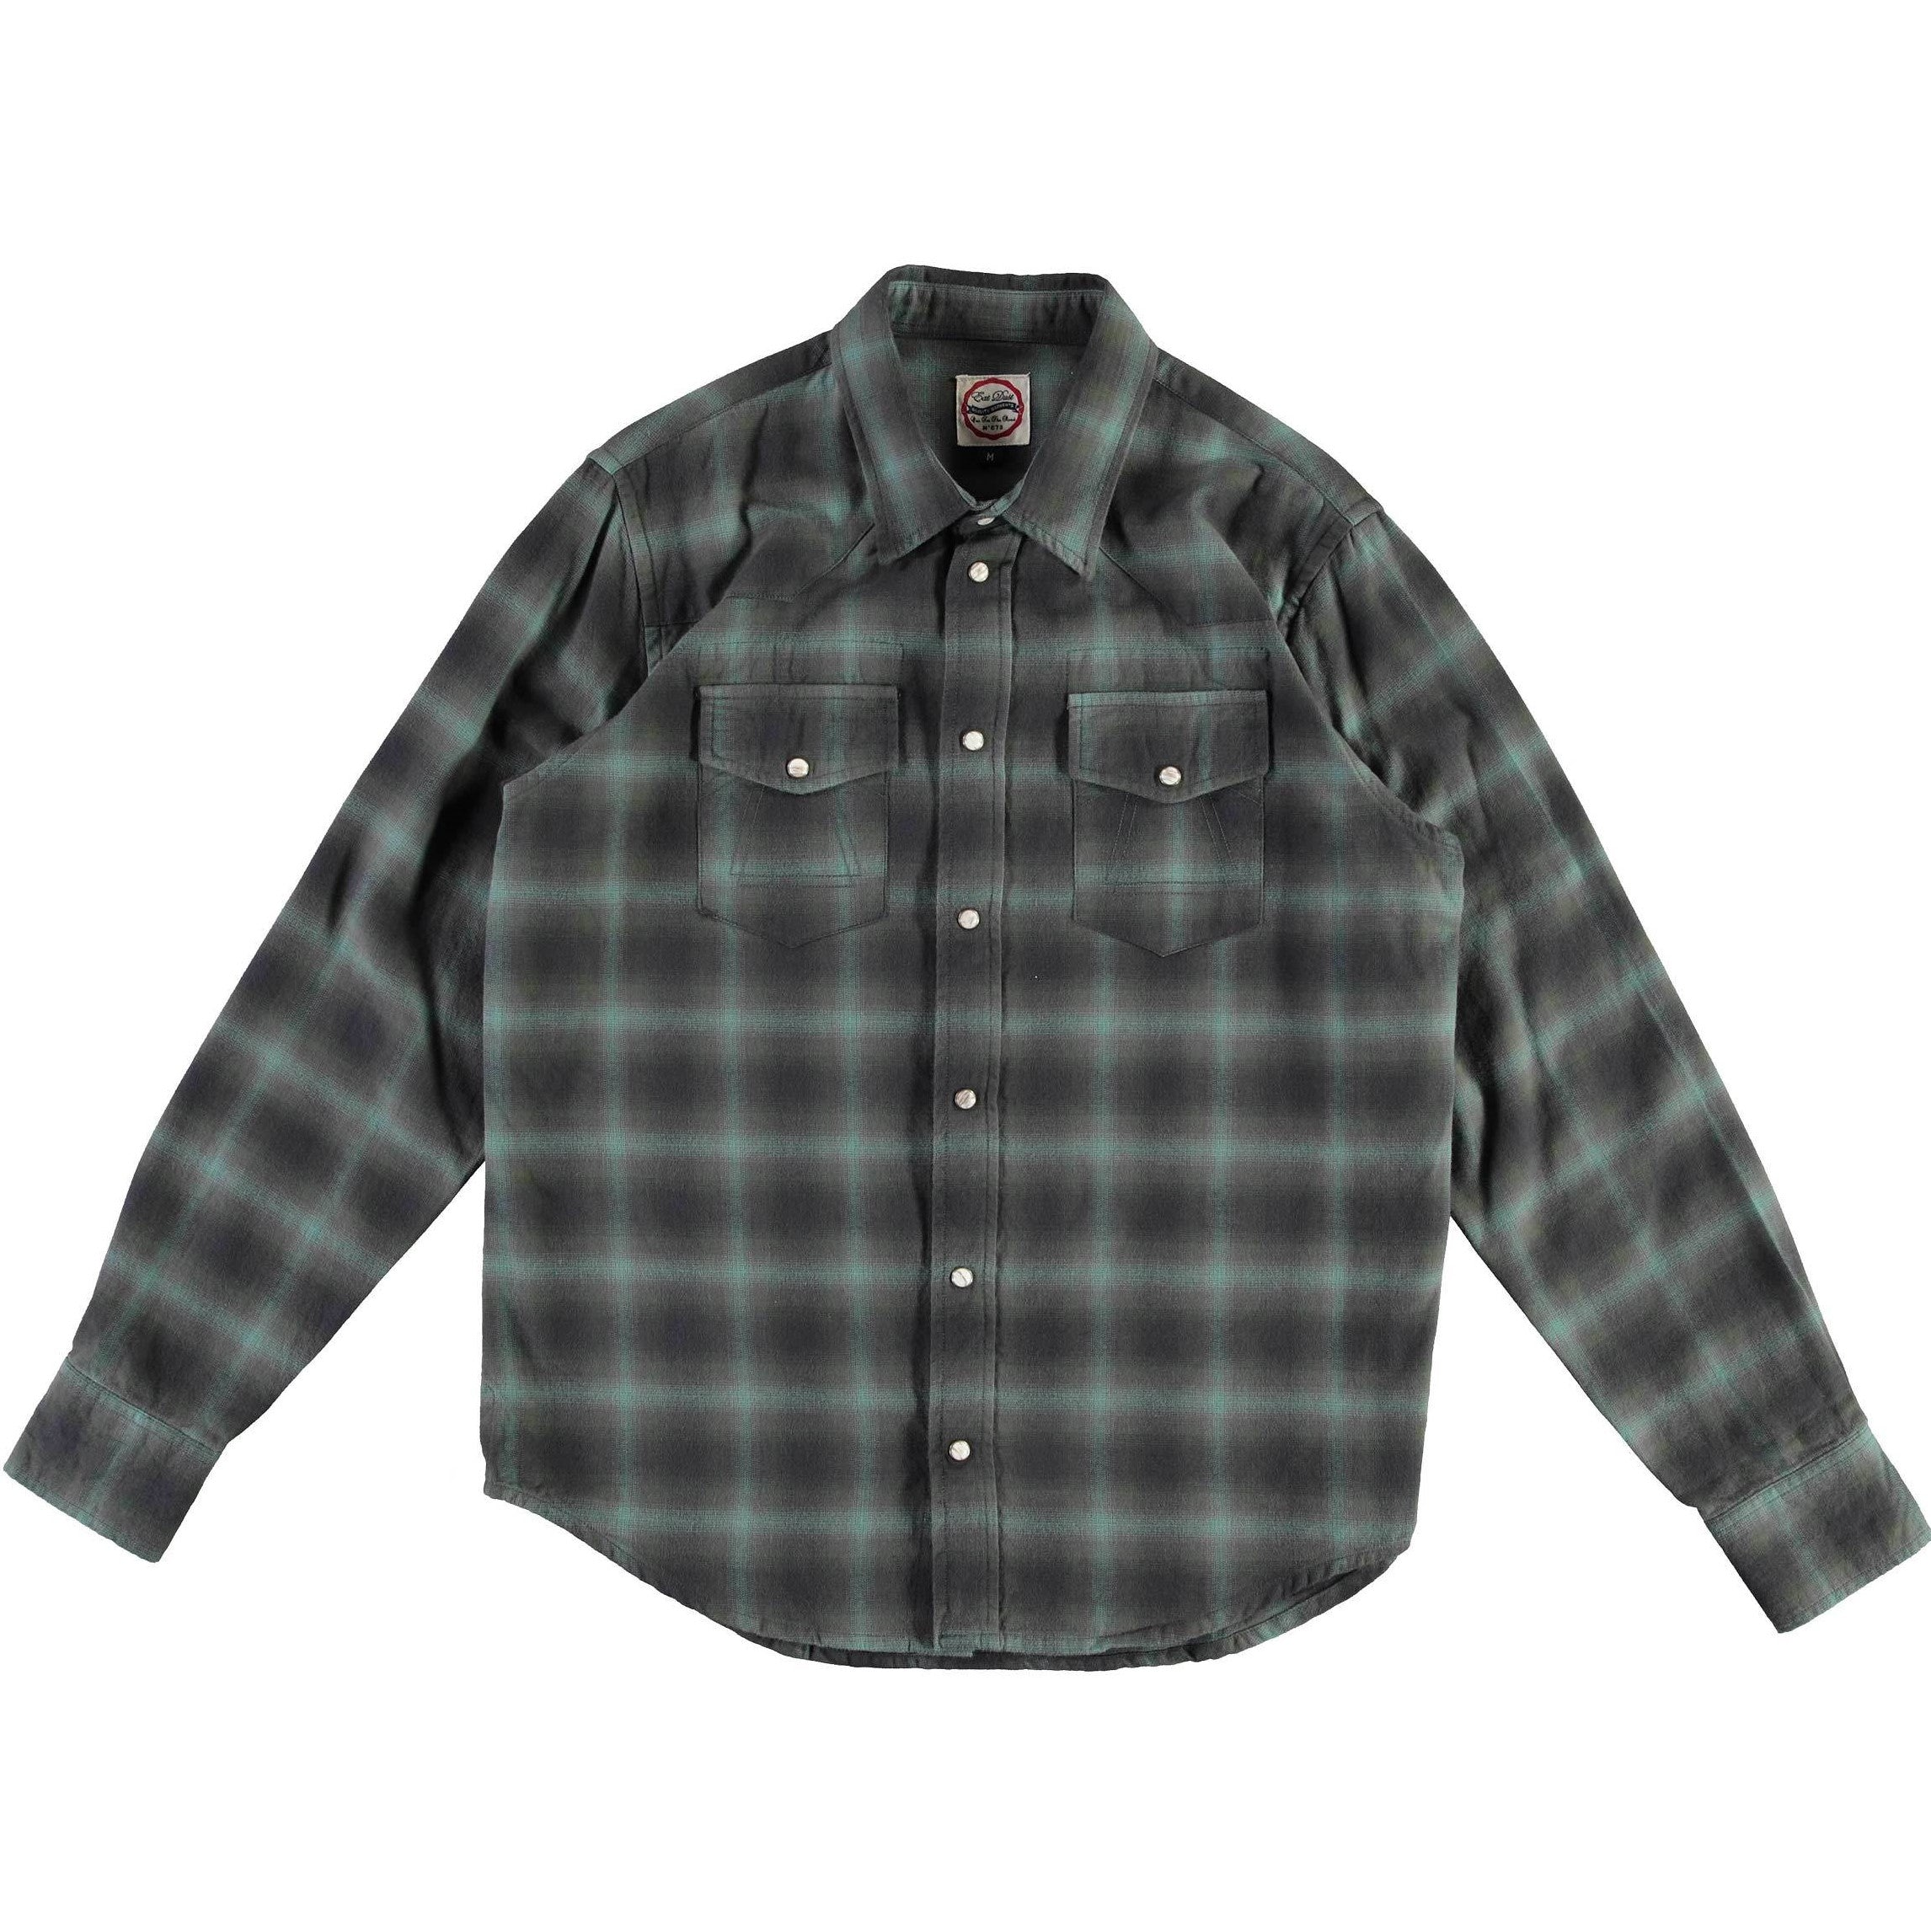 Eat Dust Western Shirt Inverness Check Green